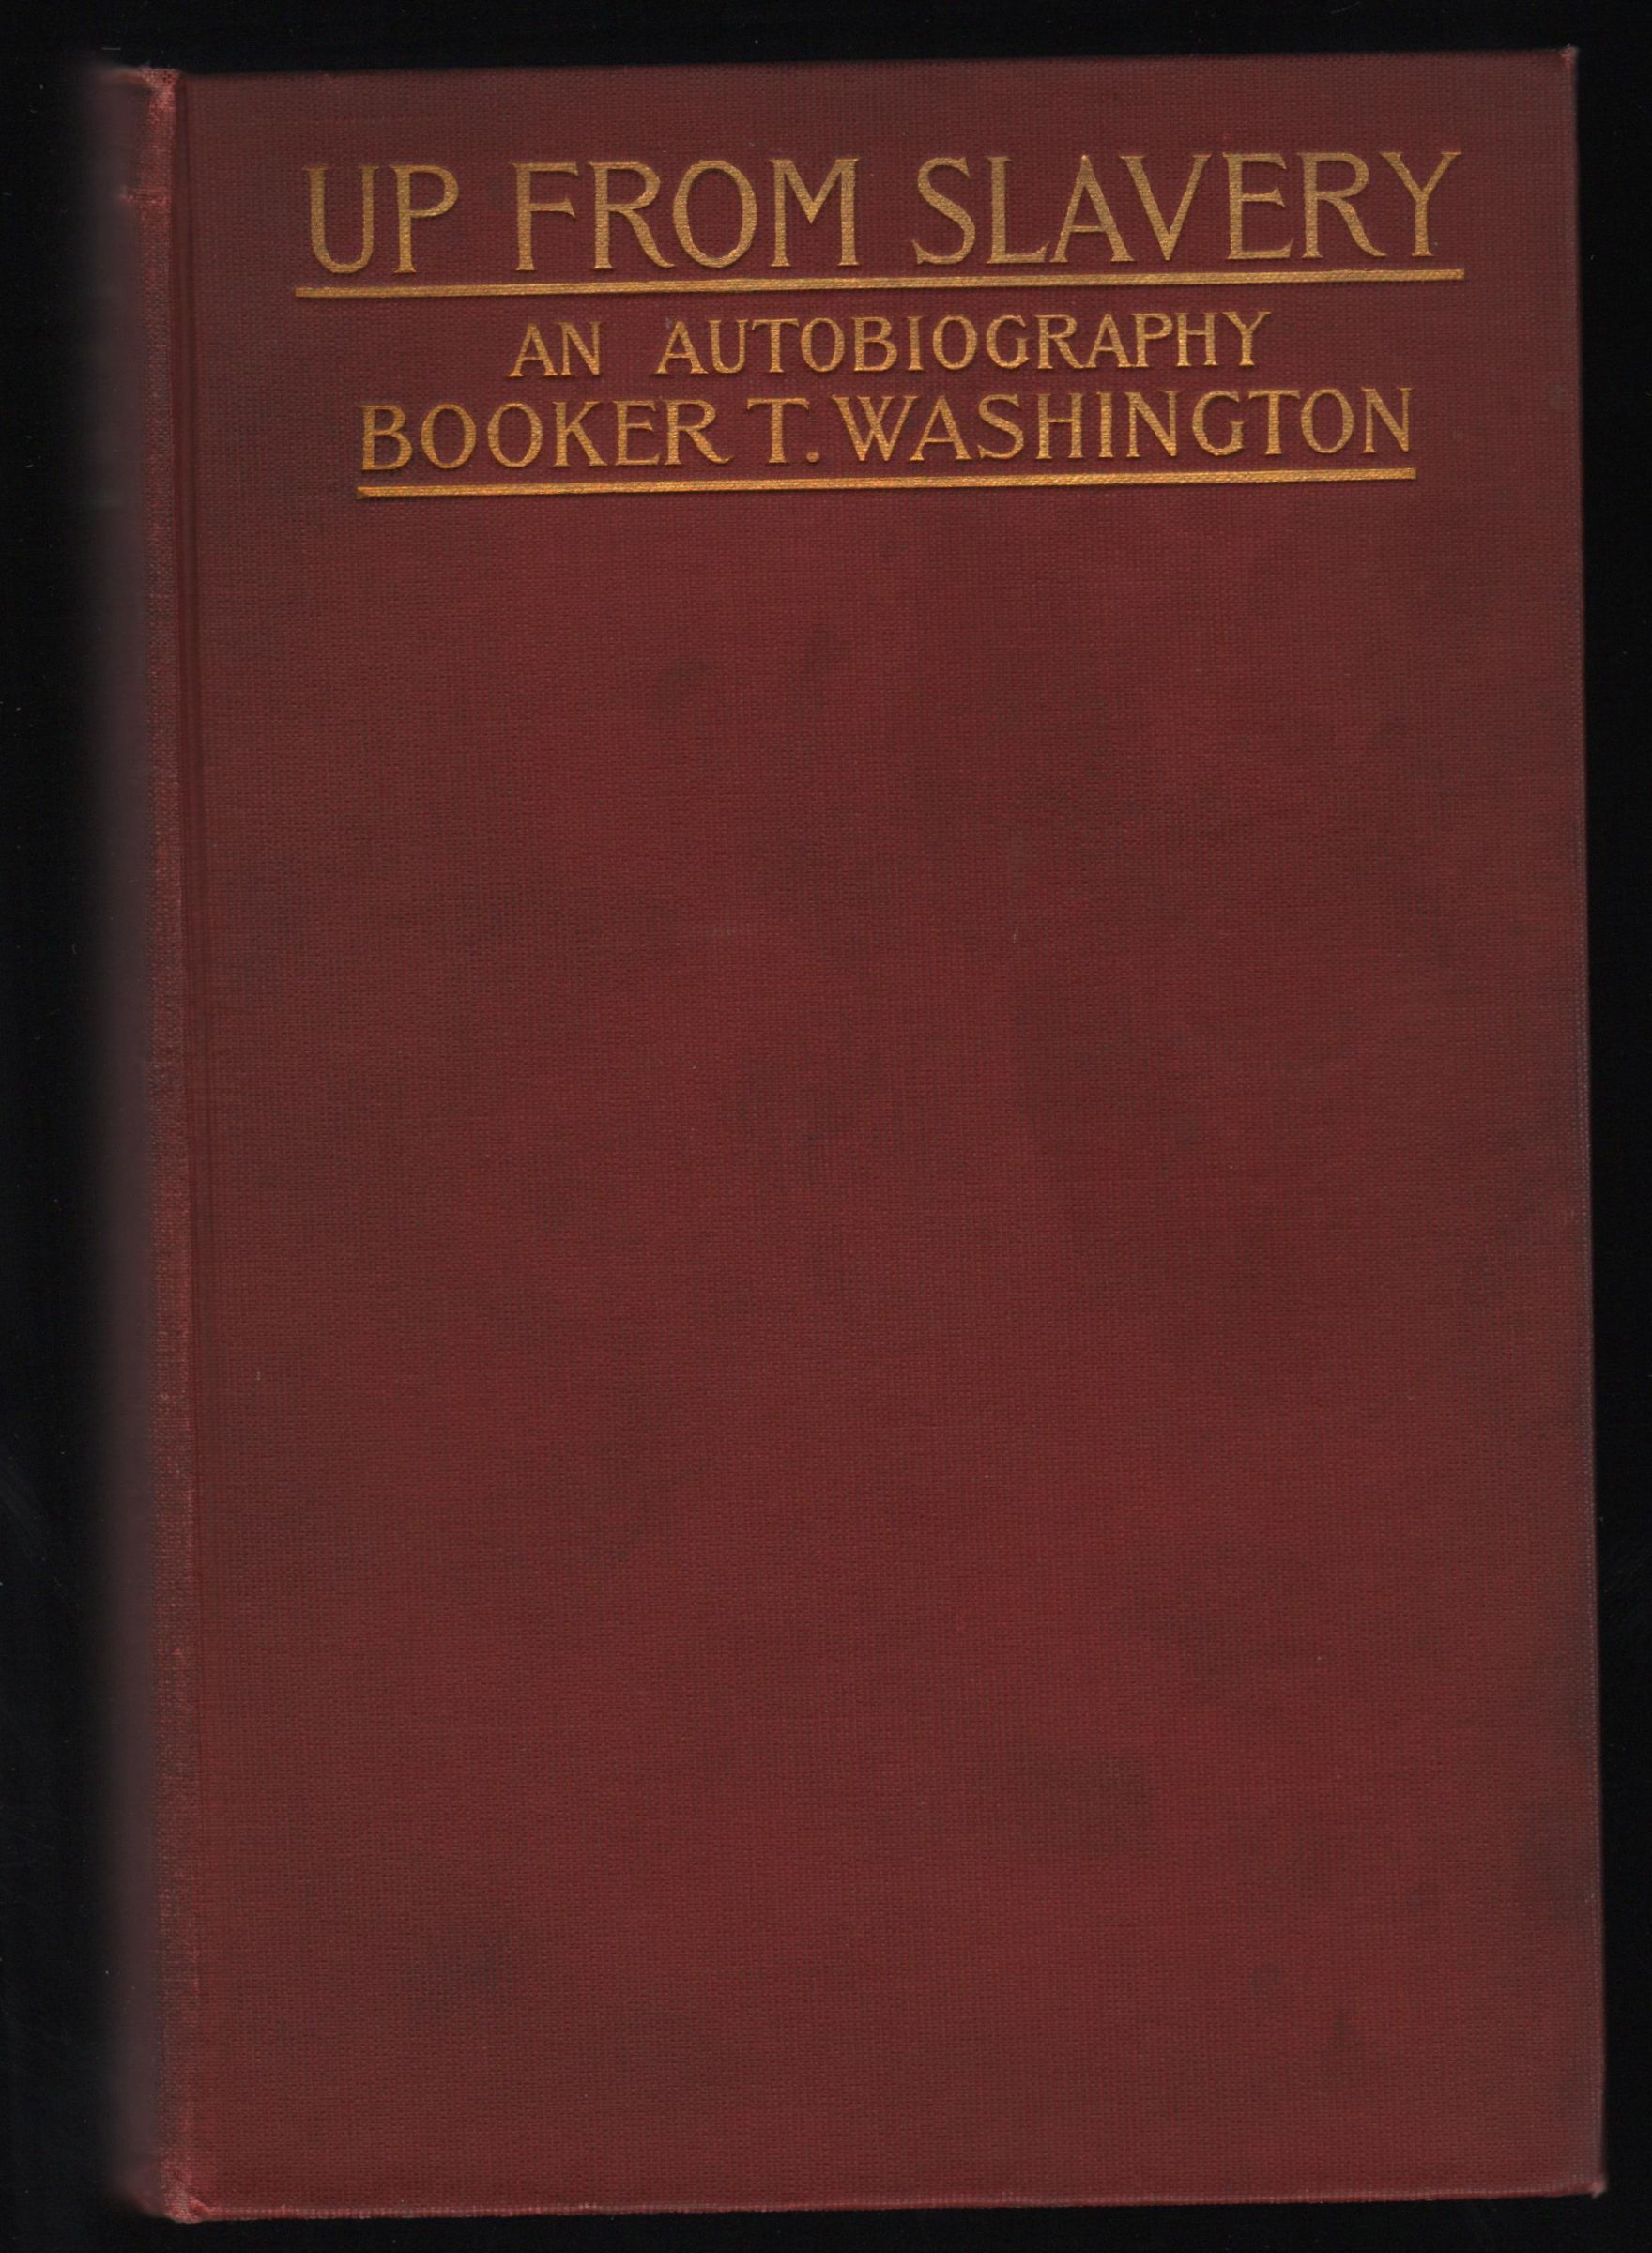 a literary analysis of the autobiography up from slavery by booker t washington Three negro classics : up from slavery the souls of black folk the autobiography of an ex-colored man other contributors: washington, booker t, 1856-1915.